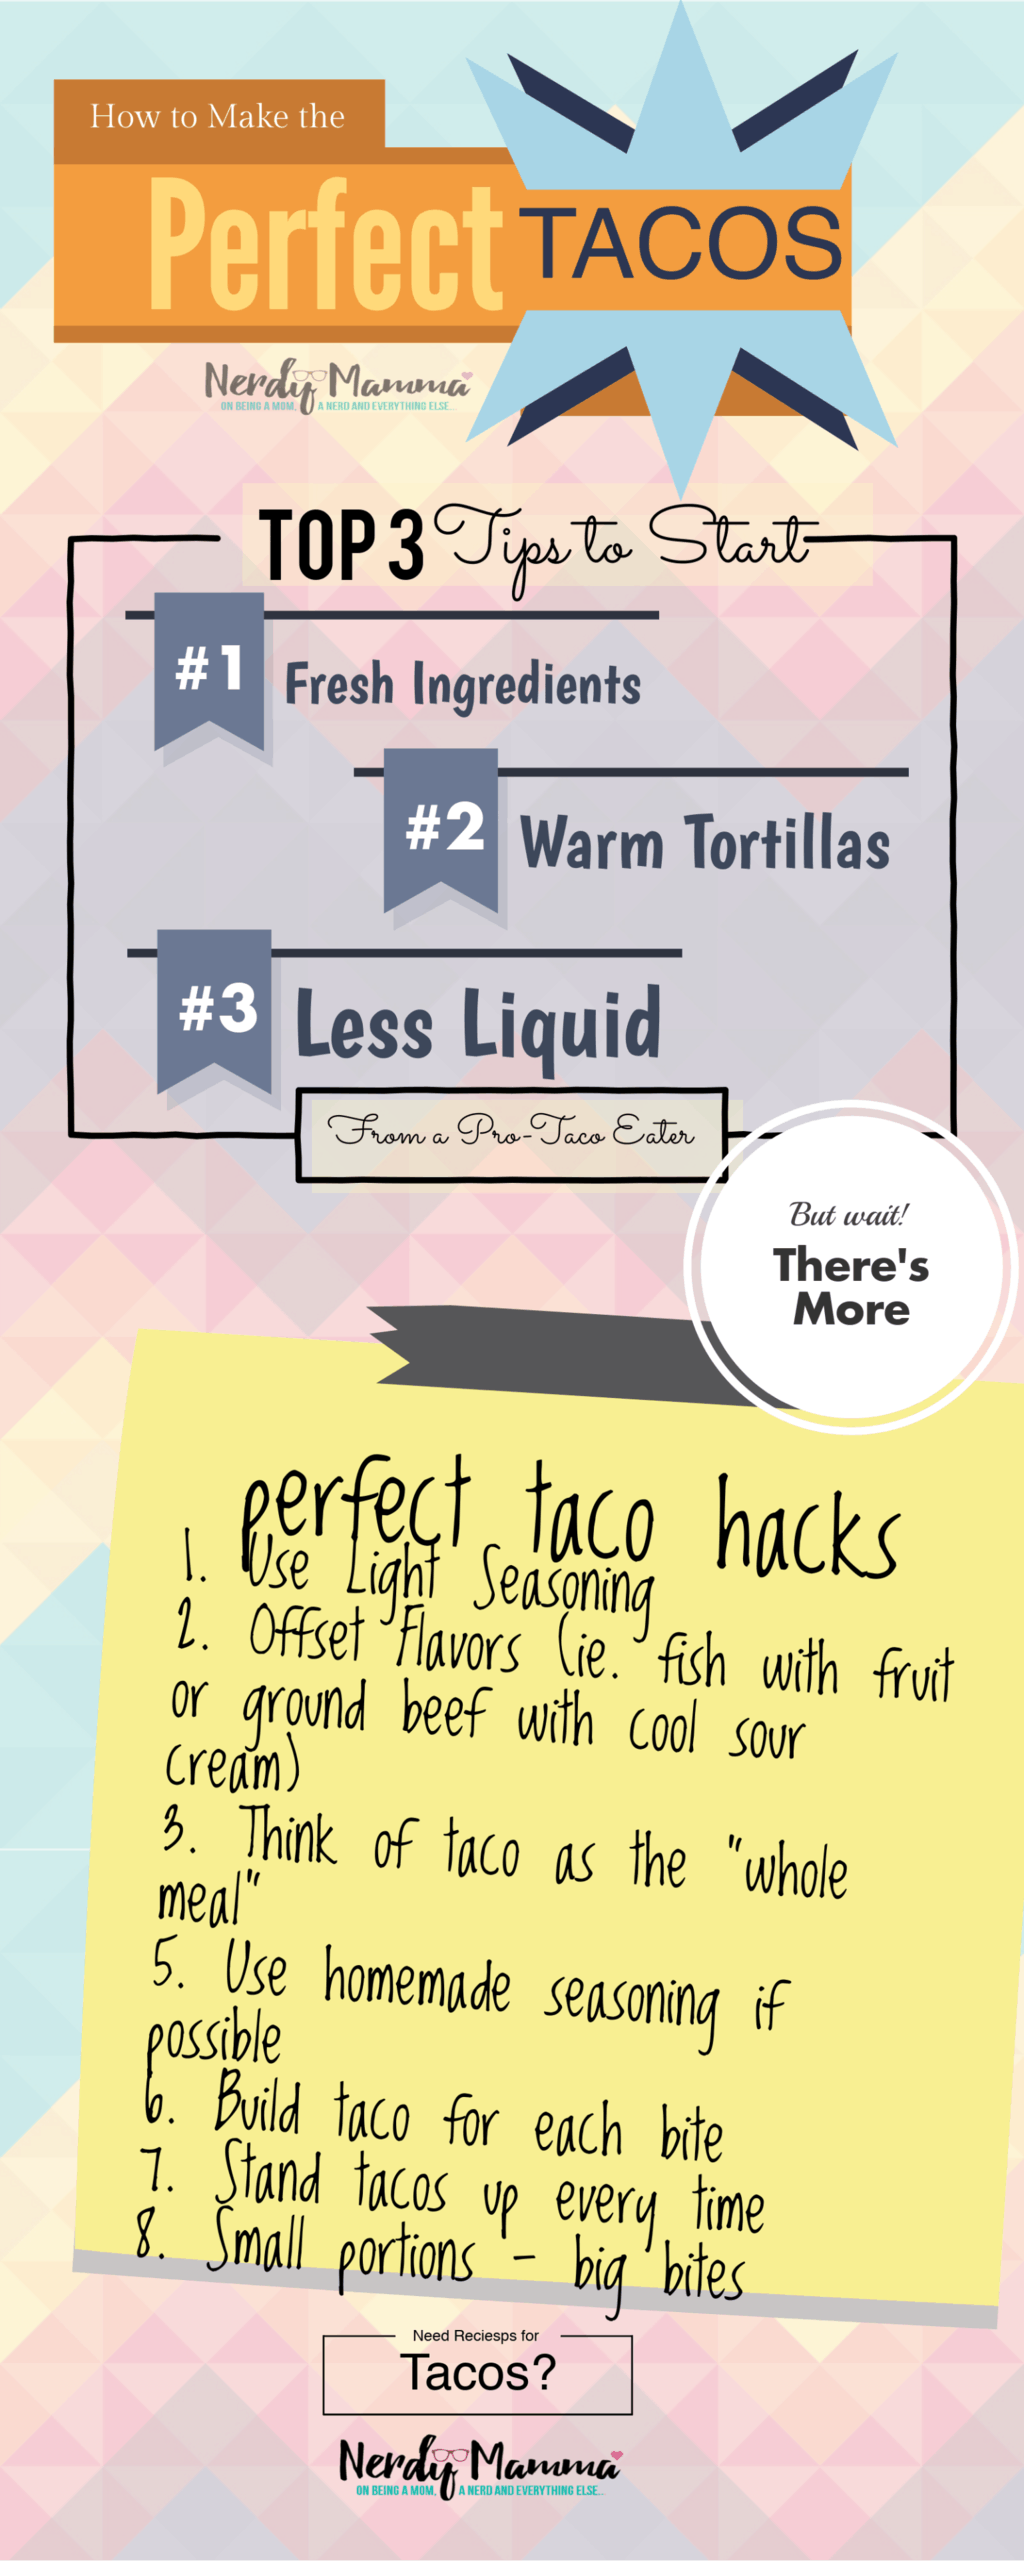 These hacks for making the perfect taco are so spot on! Gotta try 'em all! #hacks #taco #easy #tricks